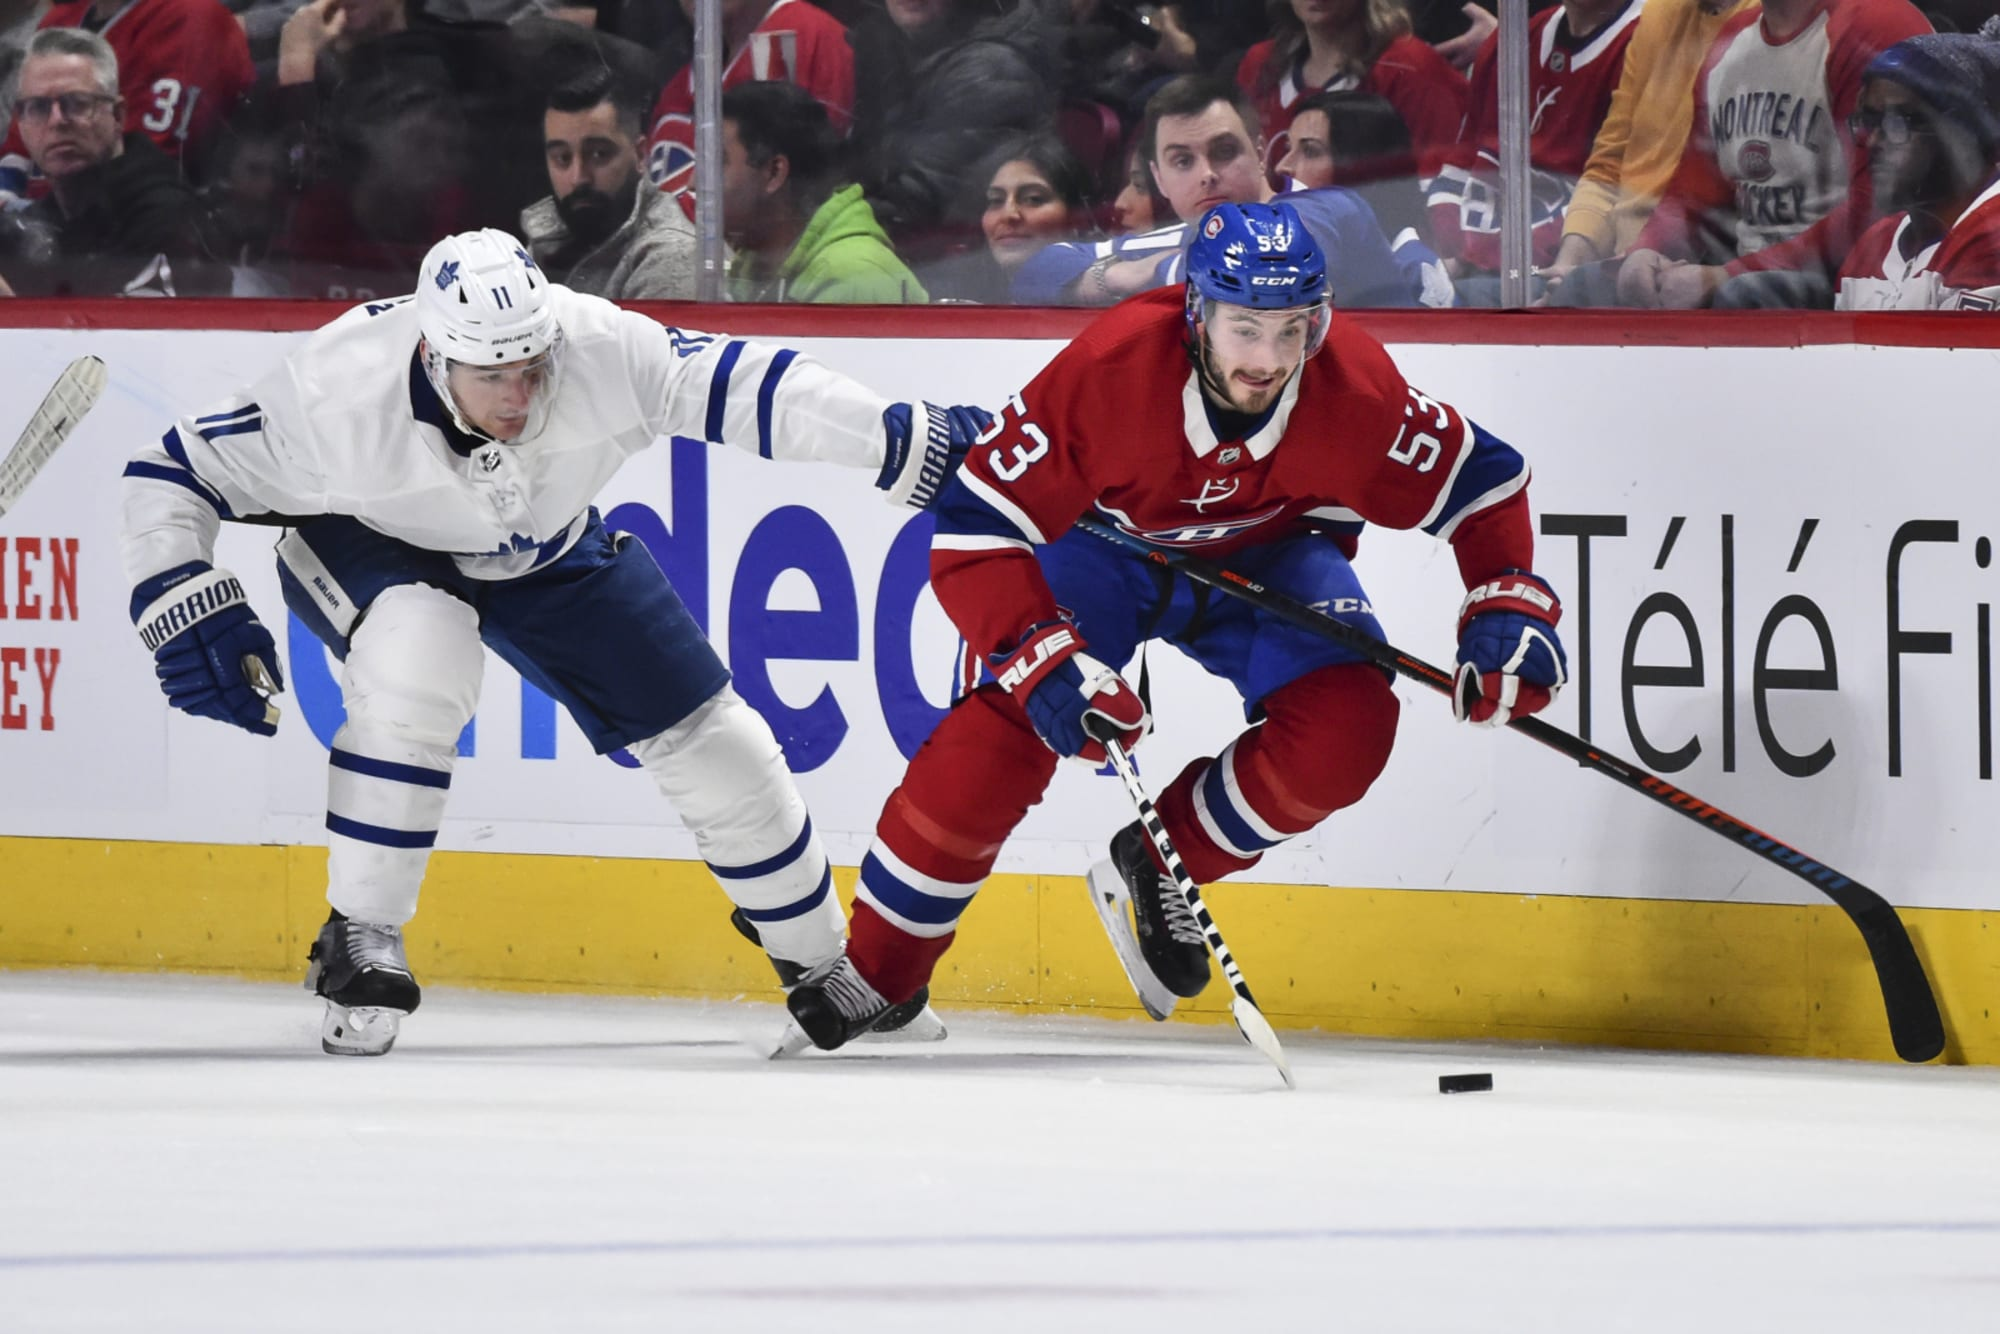 Toronto Maple Leafs Vs Montreal Canadiens Live Stream Tv Info